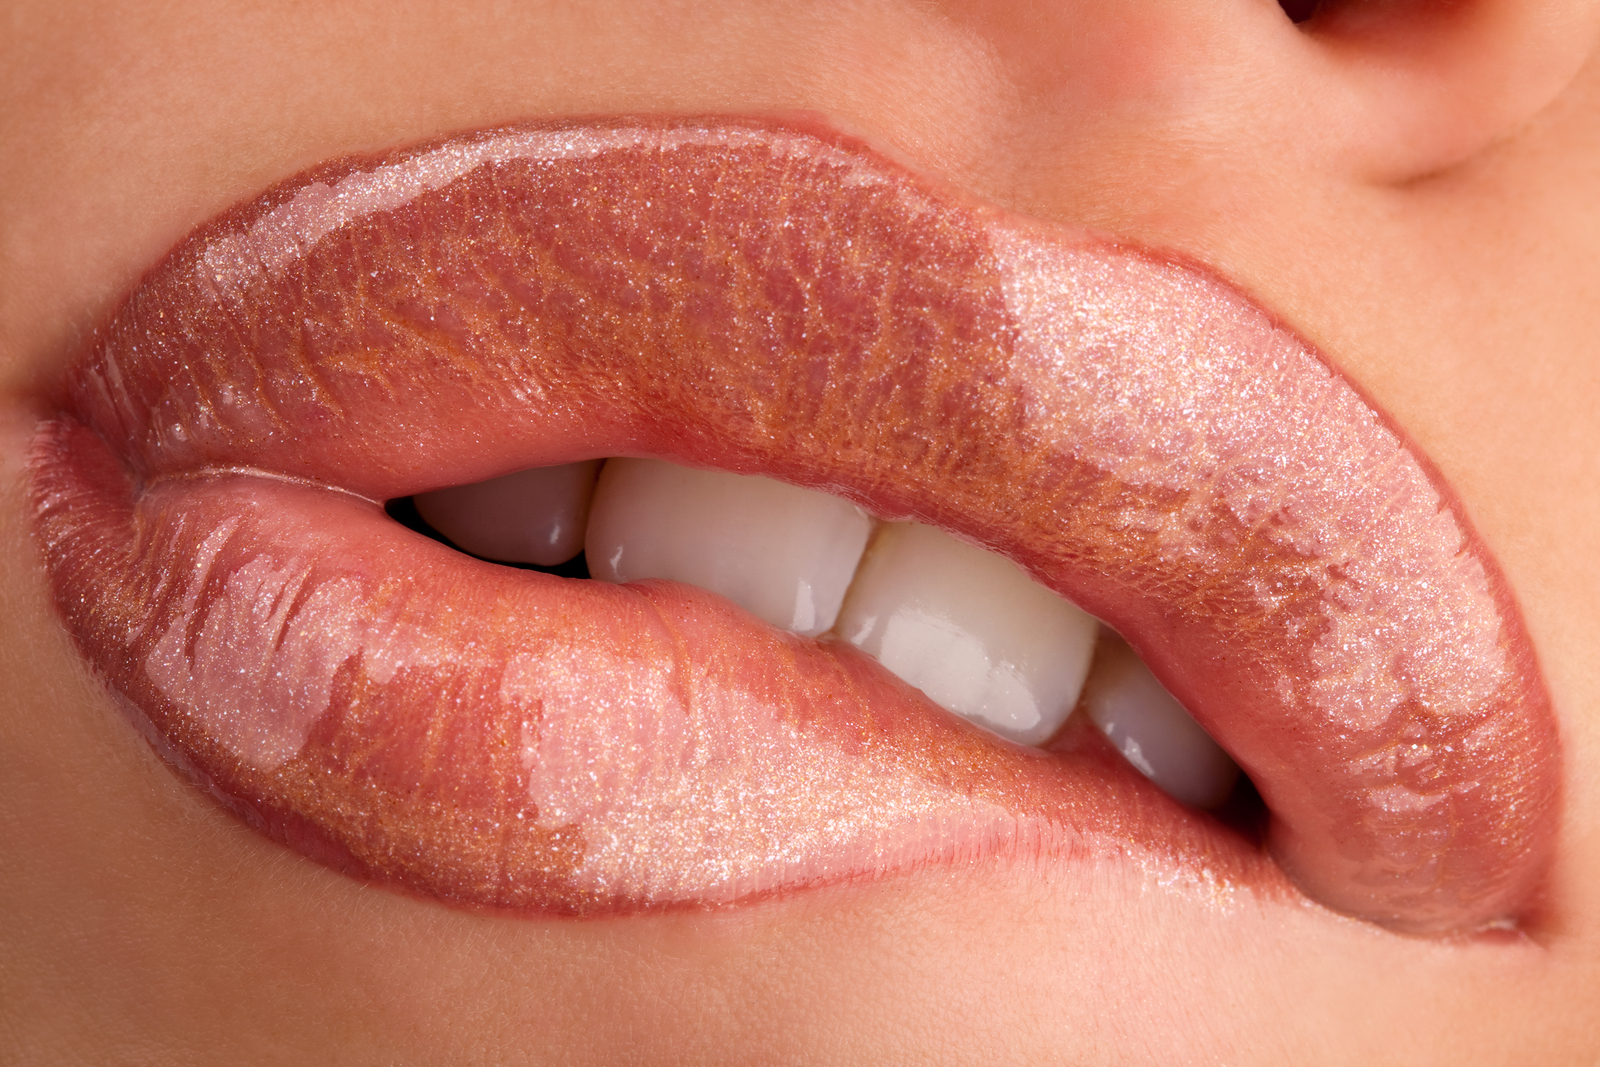 The truth is a lip plumper isn't going to perform any miracles. But once you've adjusted your expectations accordingly, you'll find that plenty of products can give the effect of a plumper pout without actually changing the shape of your lips.